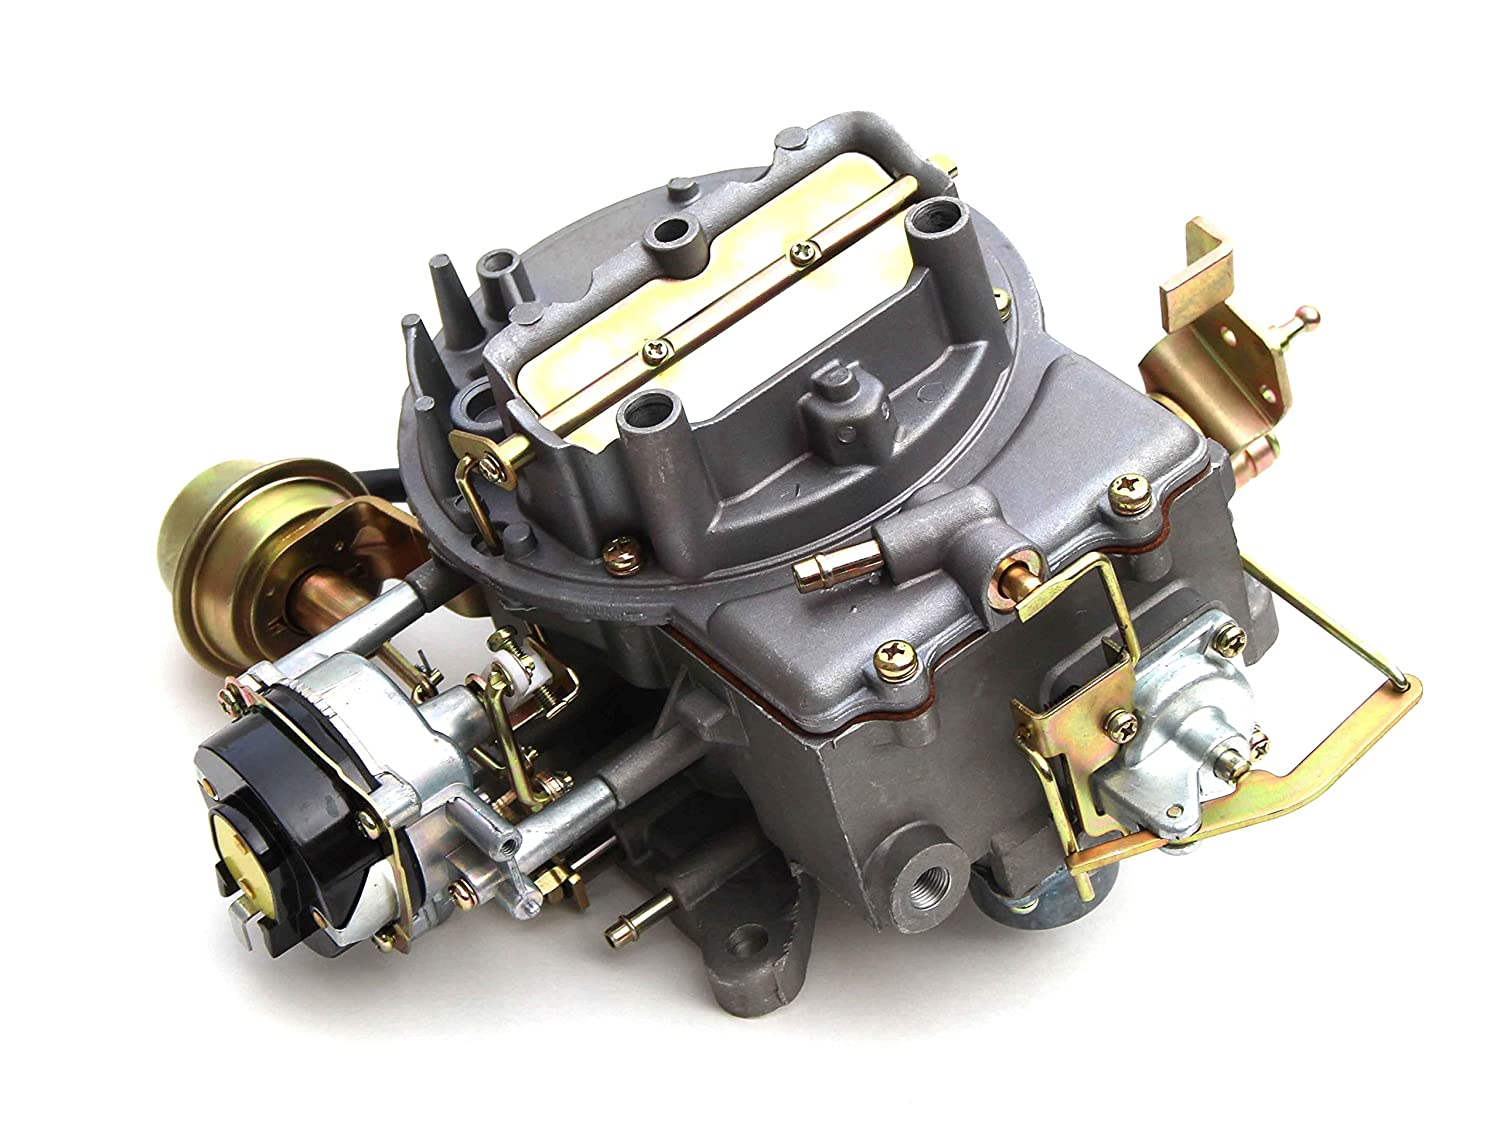 New Carburetor Two 2 Barrel Carburetor Carb 2100 2150 For Ford 289 302 351 Cu Jeep Engine